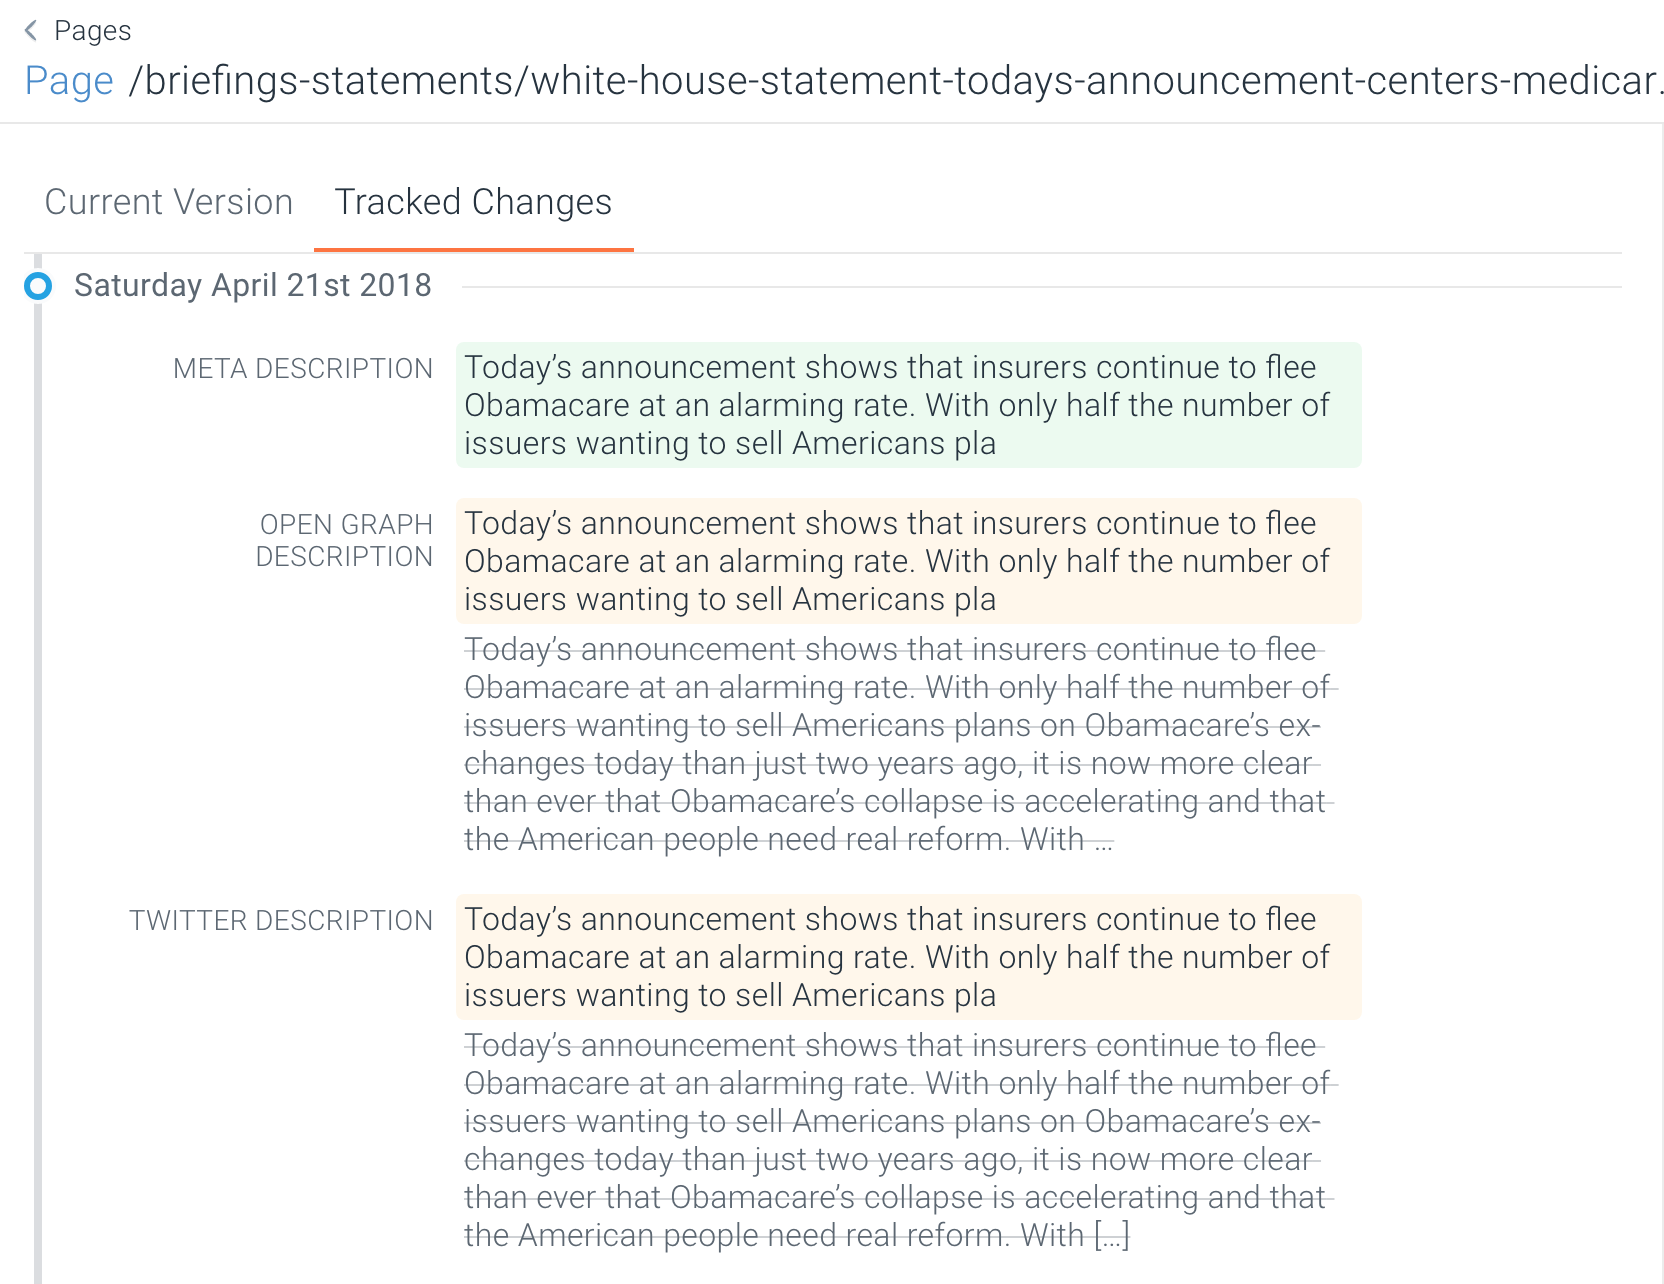 ContentKing descriptions changed for Whitehouse.gov